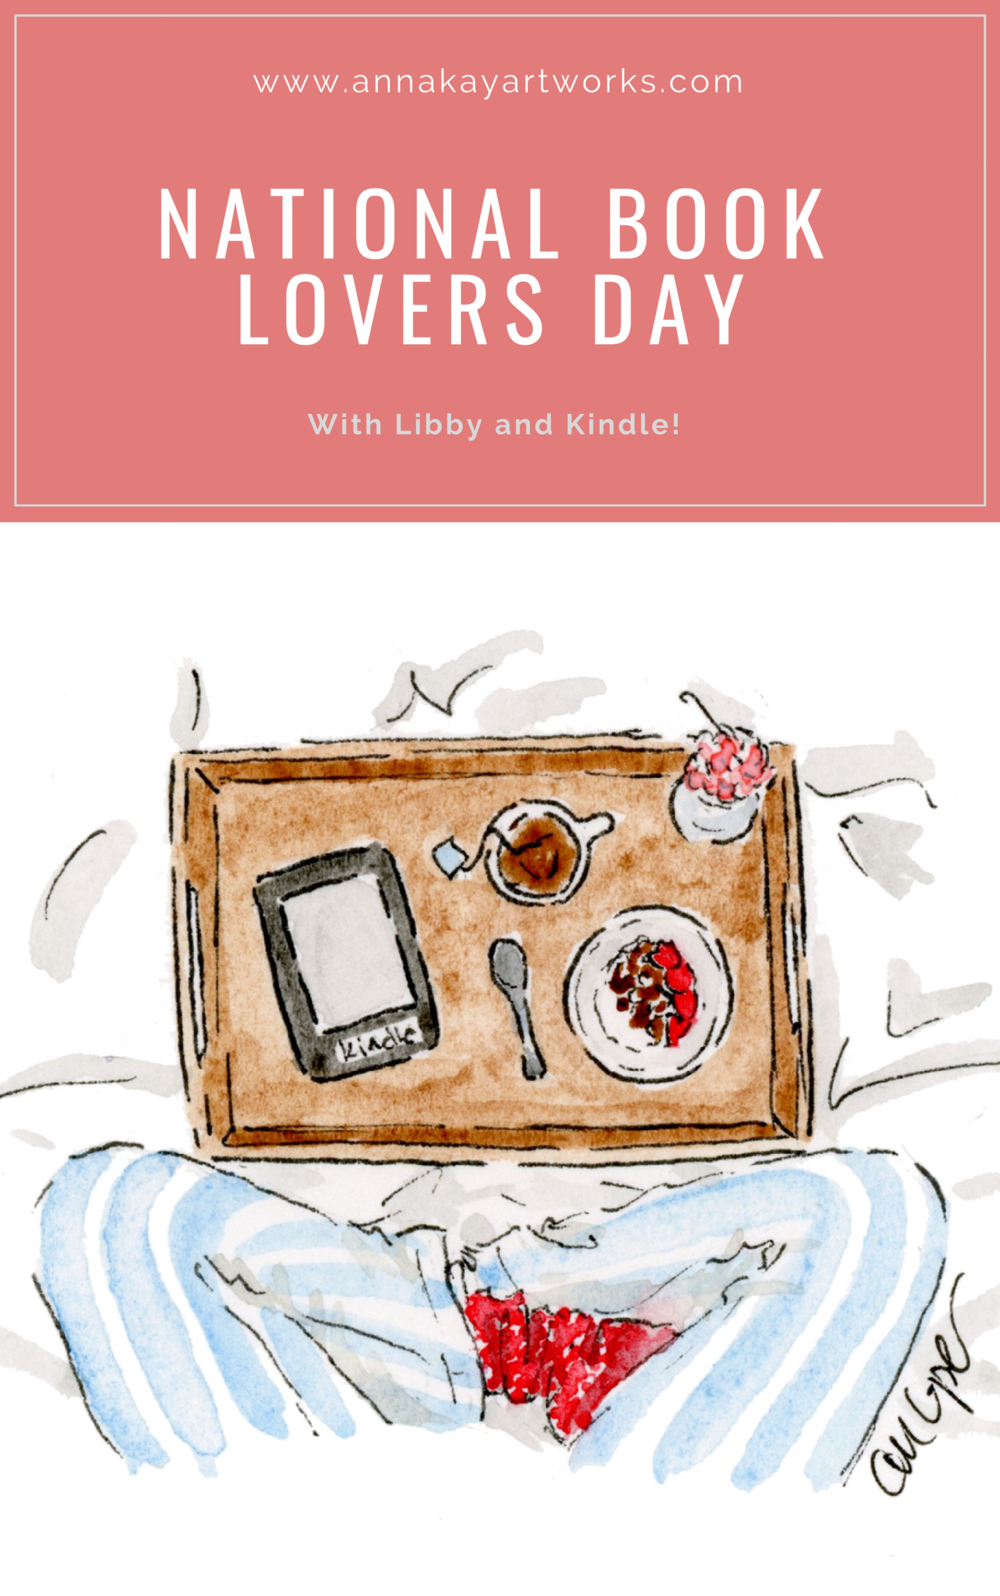 National Book Lovers Day Watercolor Kindle Anna Kay Artworks